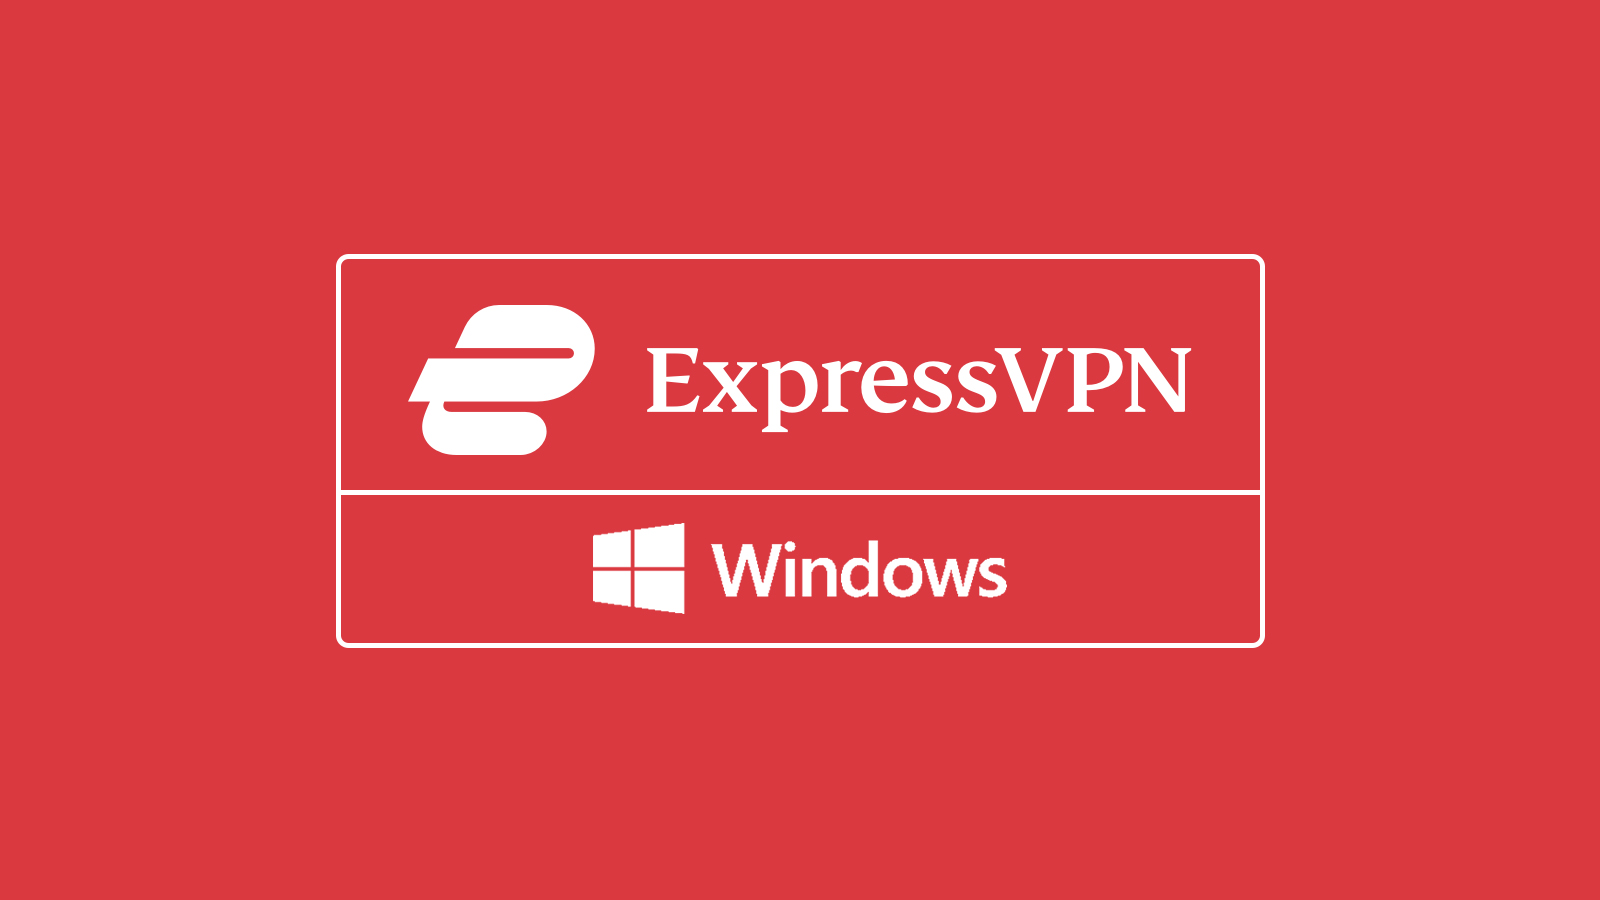 How to Share Your ExpressVPN Connection From Windows